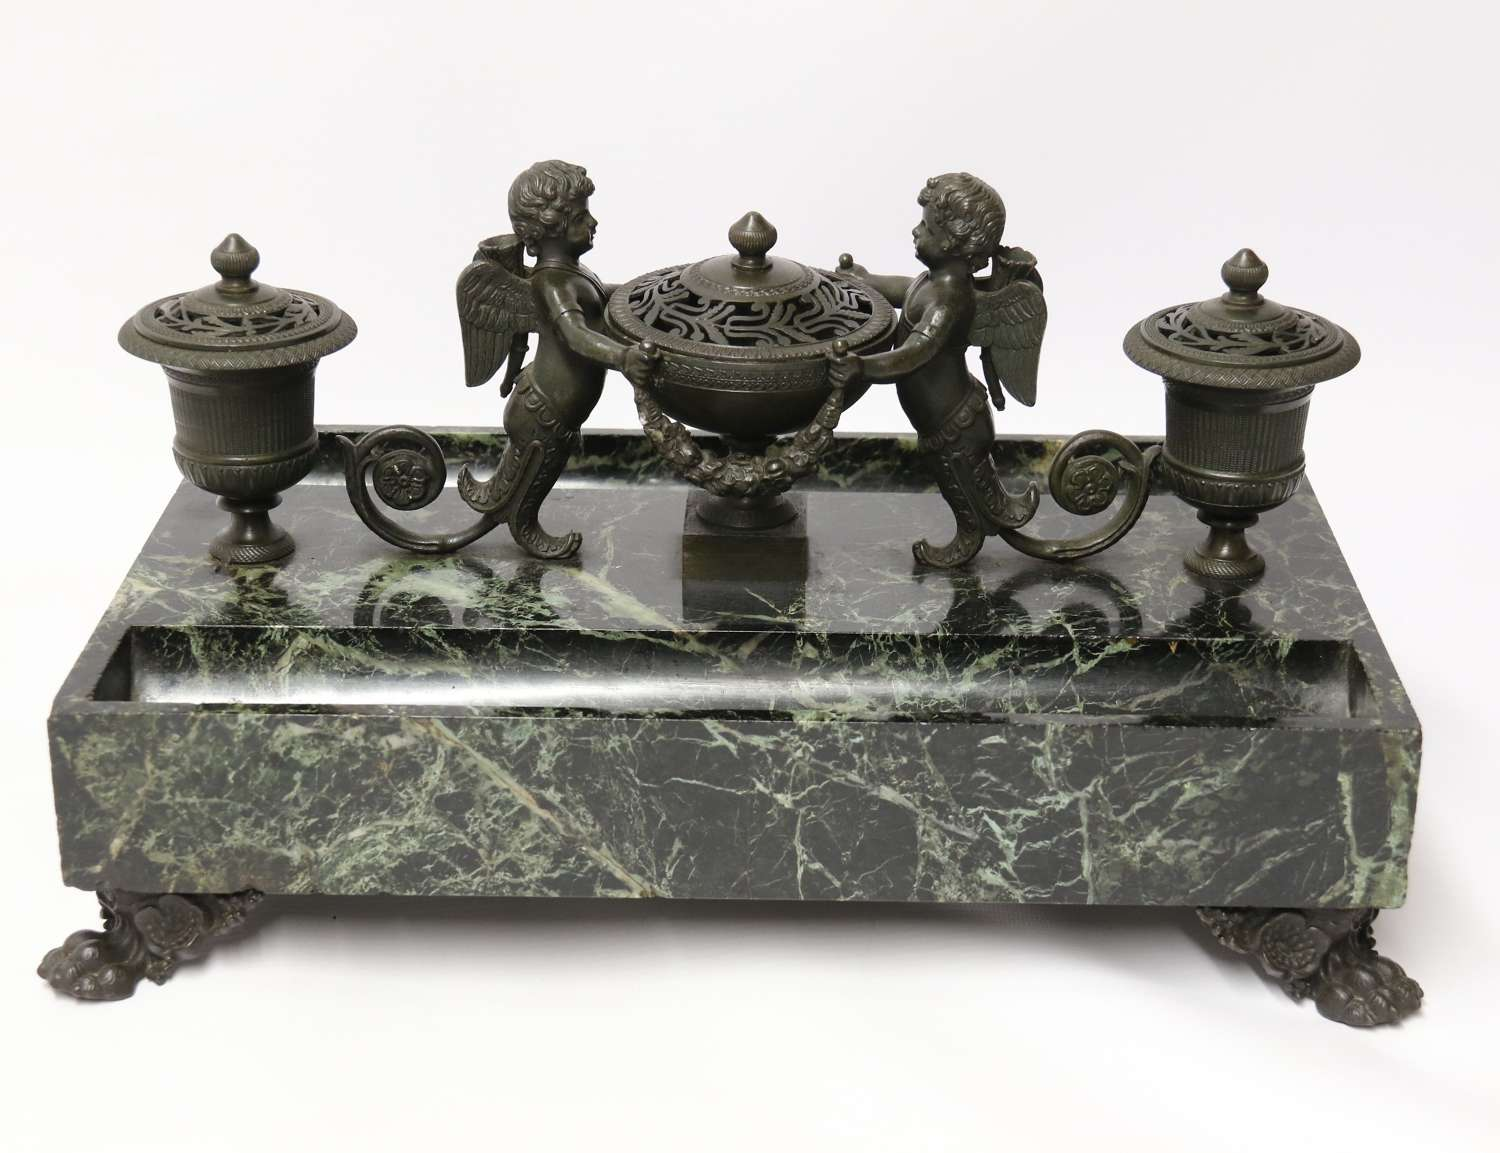 Empire bronze and marble desk top inkstand by Lefebvre of Belgium